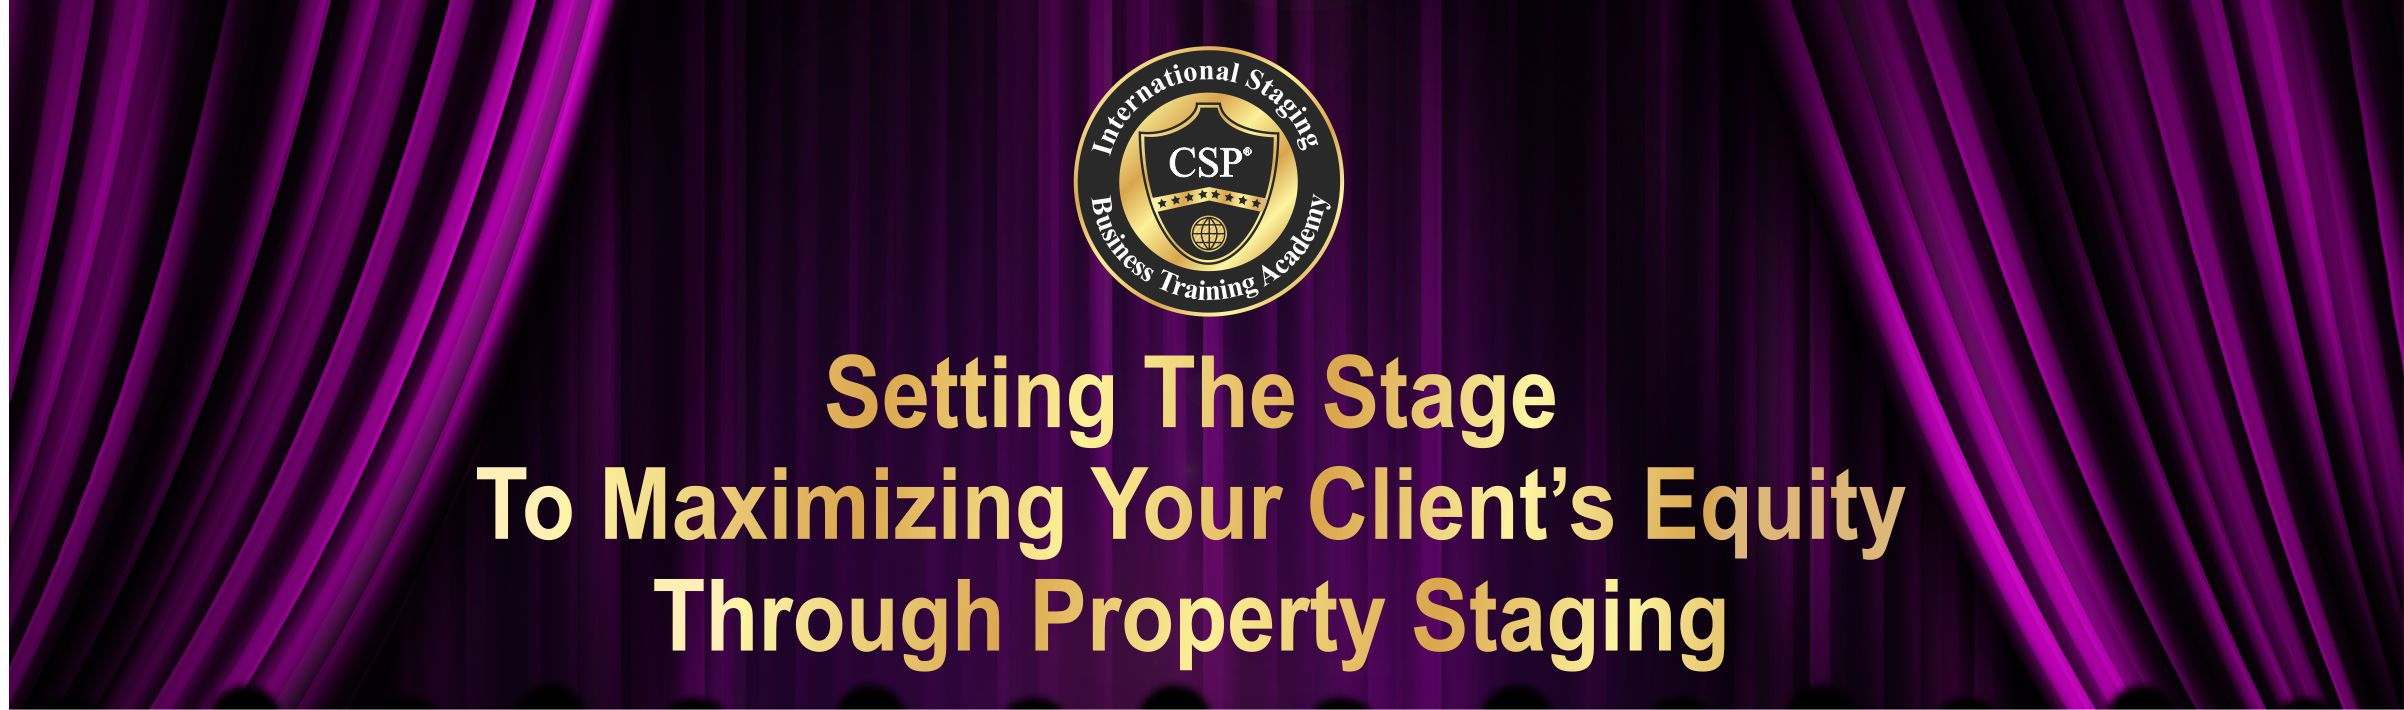 csp elite property staging for real estate agents